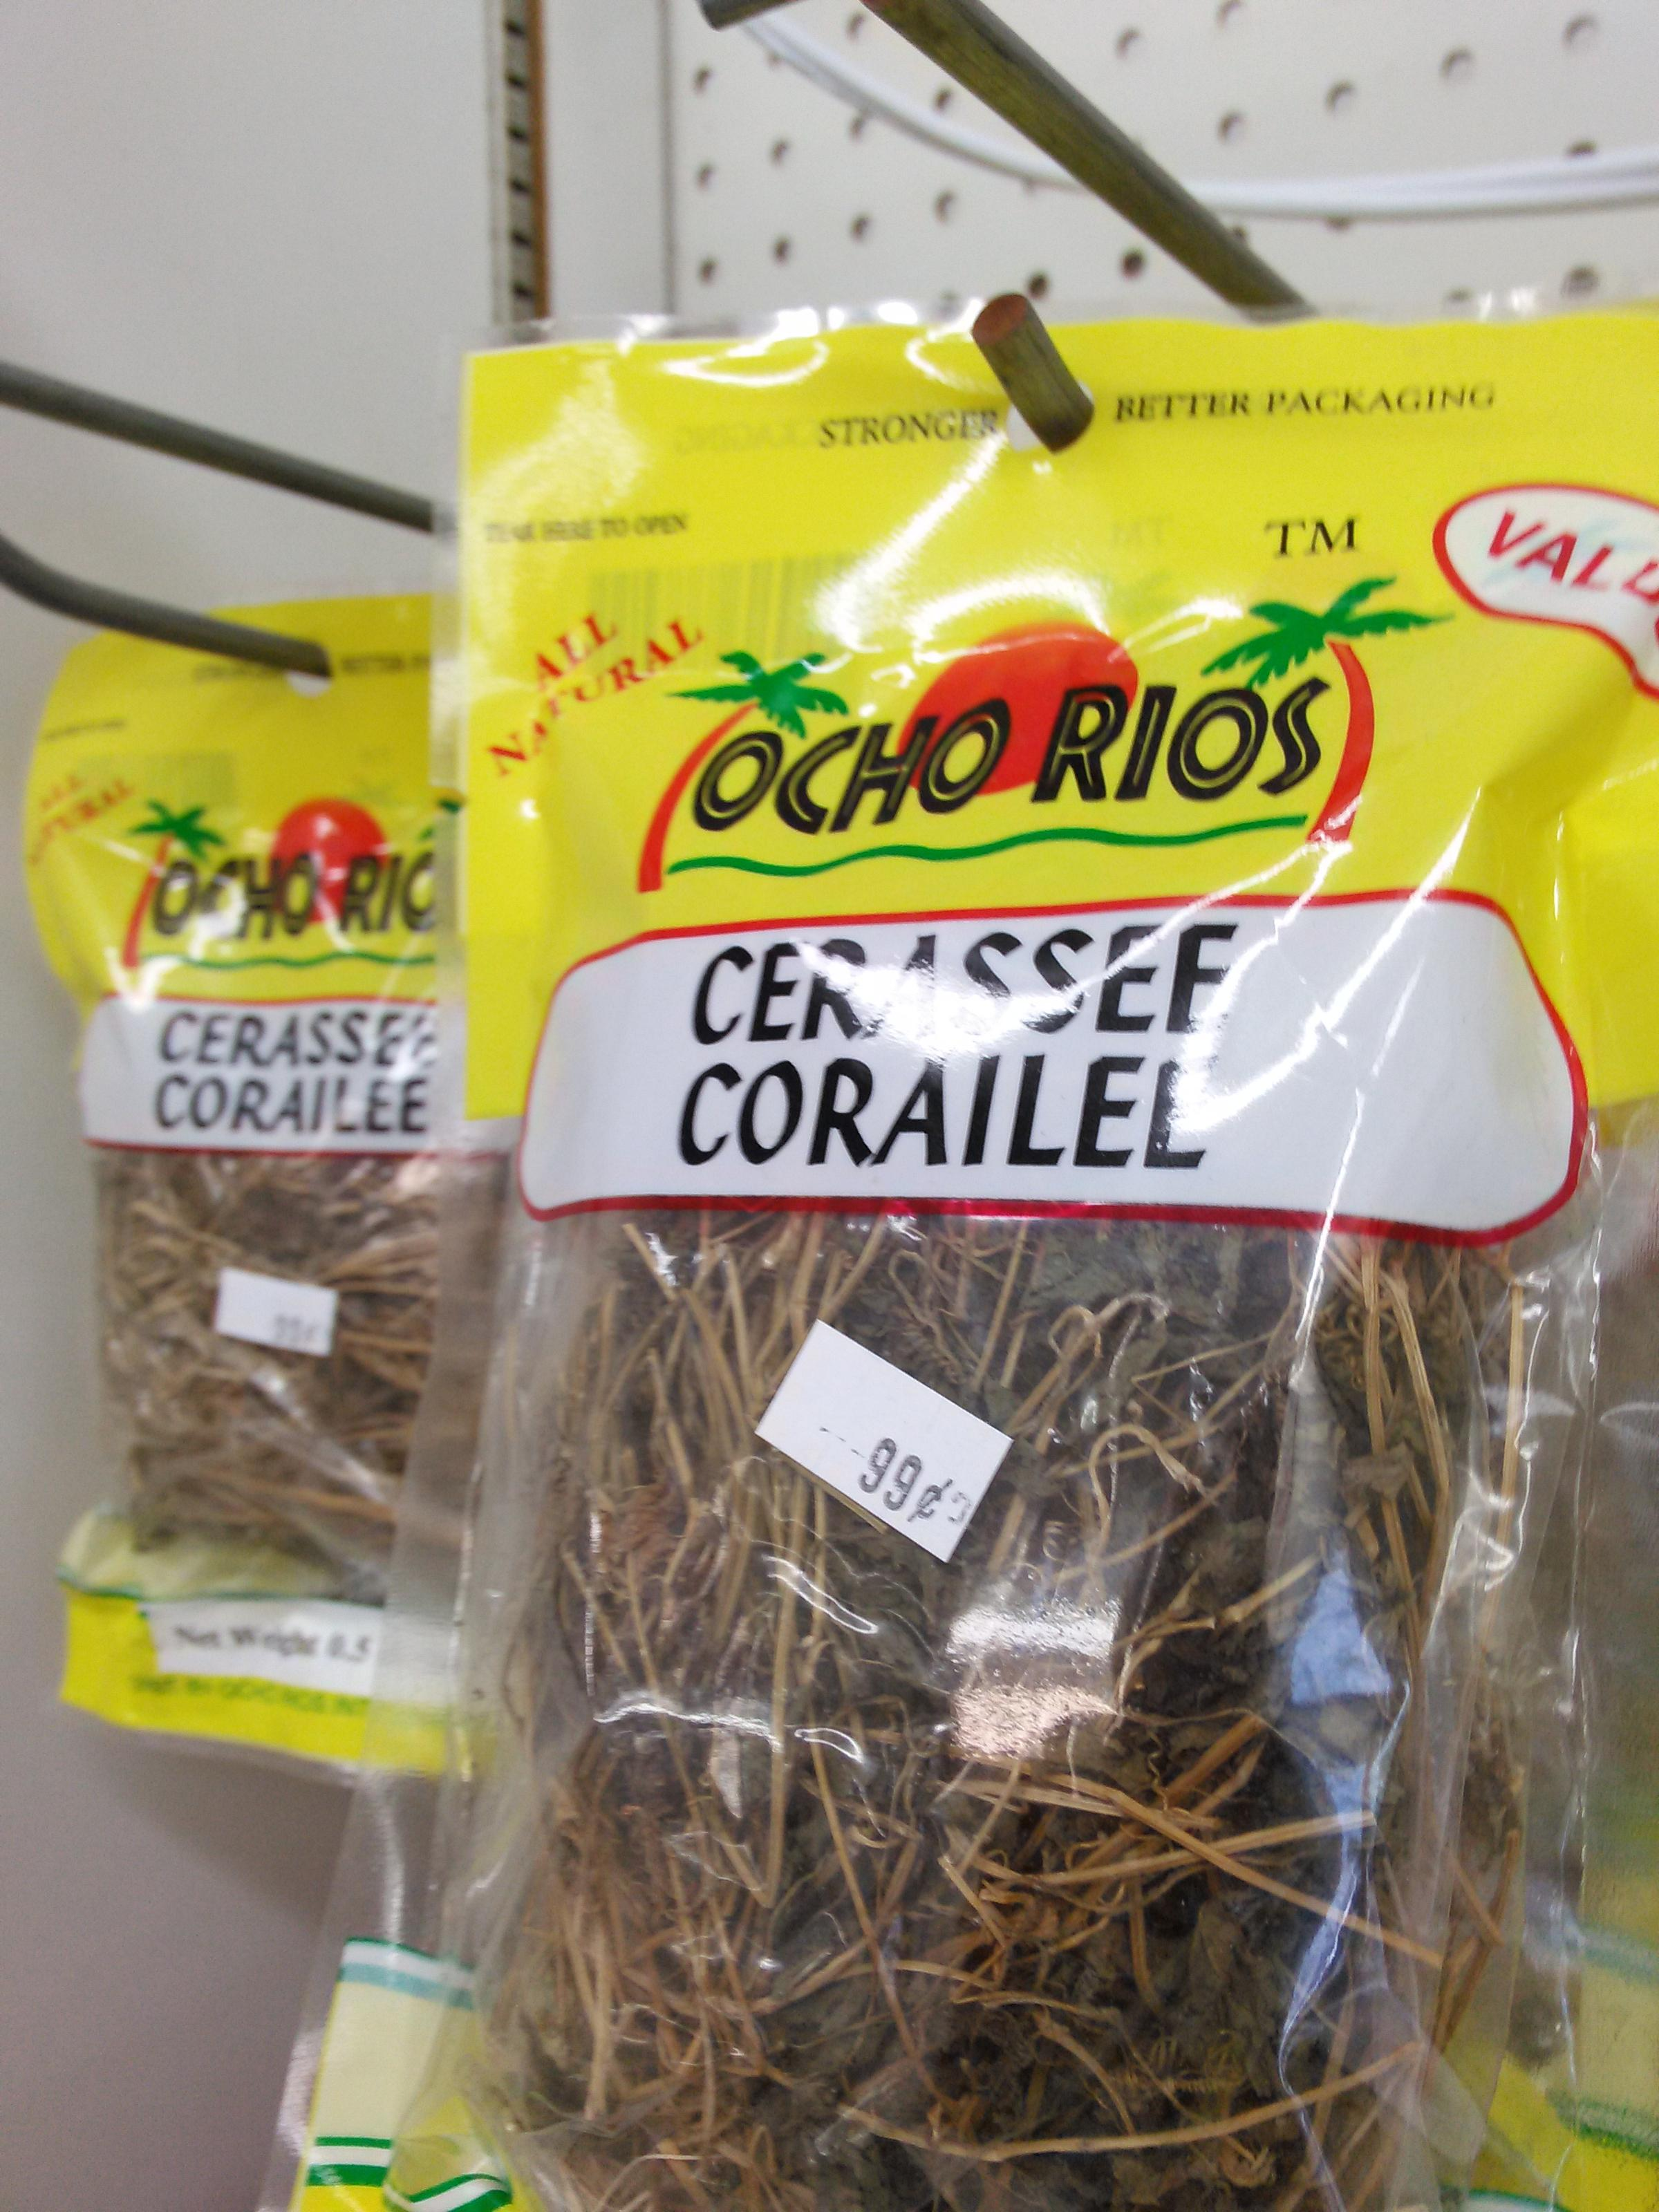 Cerasee Or Asosi: The Cure-All Plant For South Florida's Caribbean